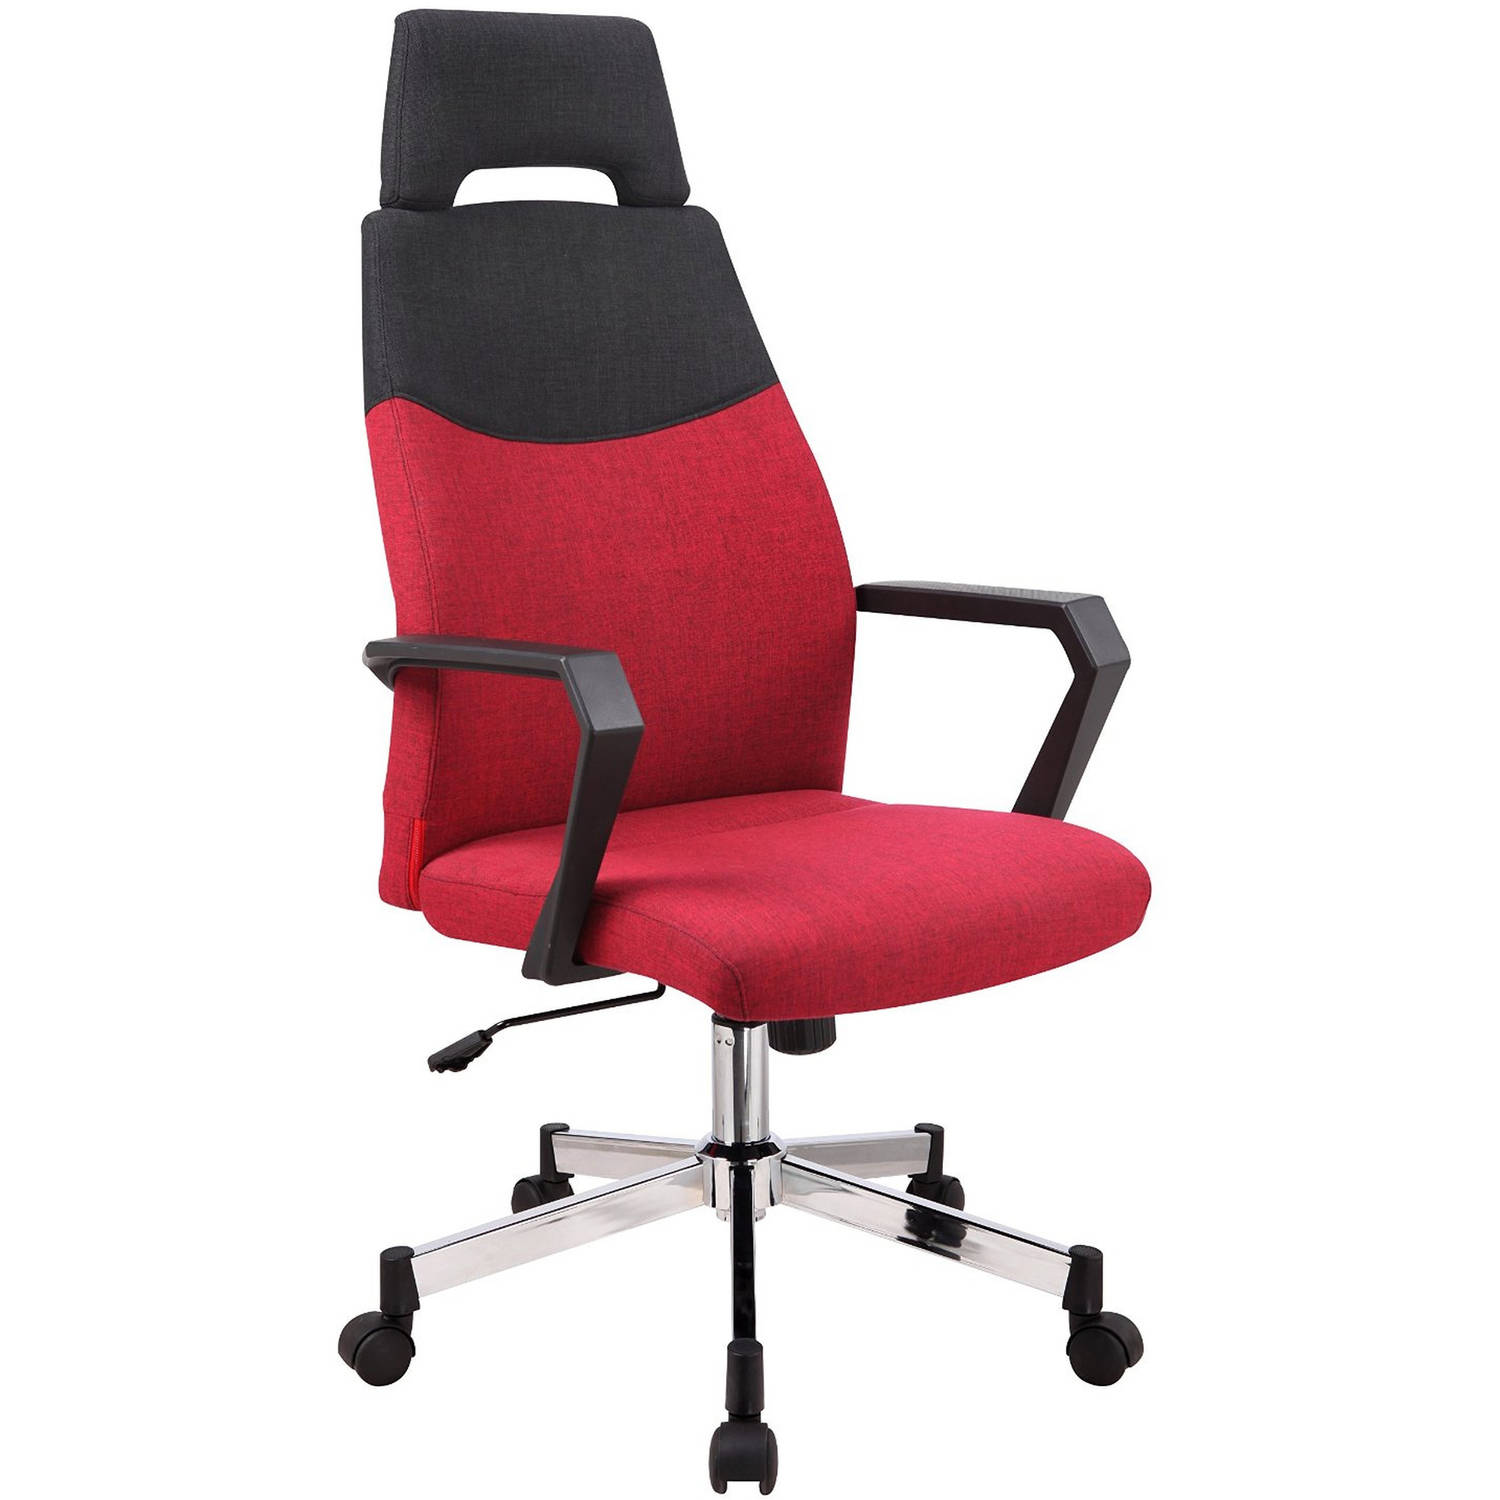 Merax High Back Ergonomic Linen Fabric fice Chair with